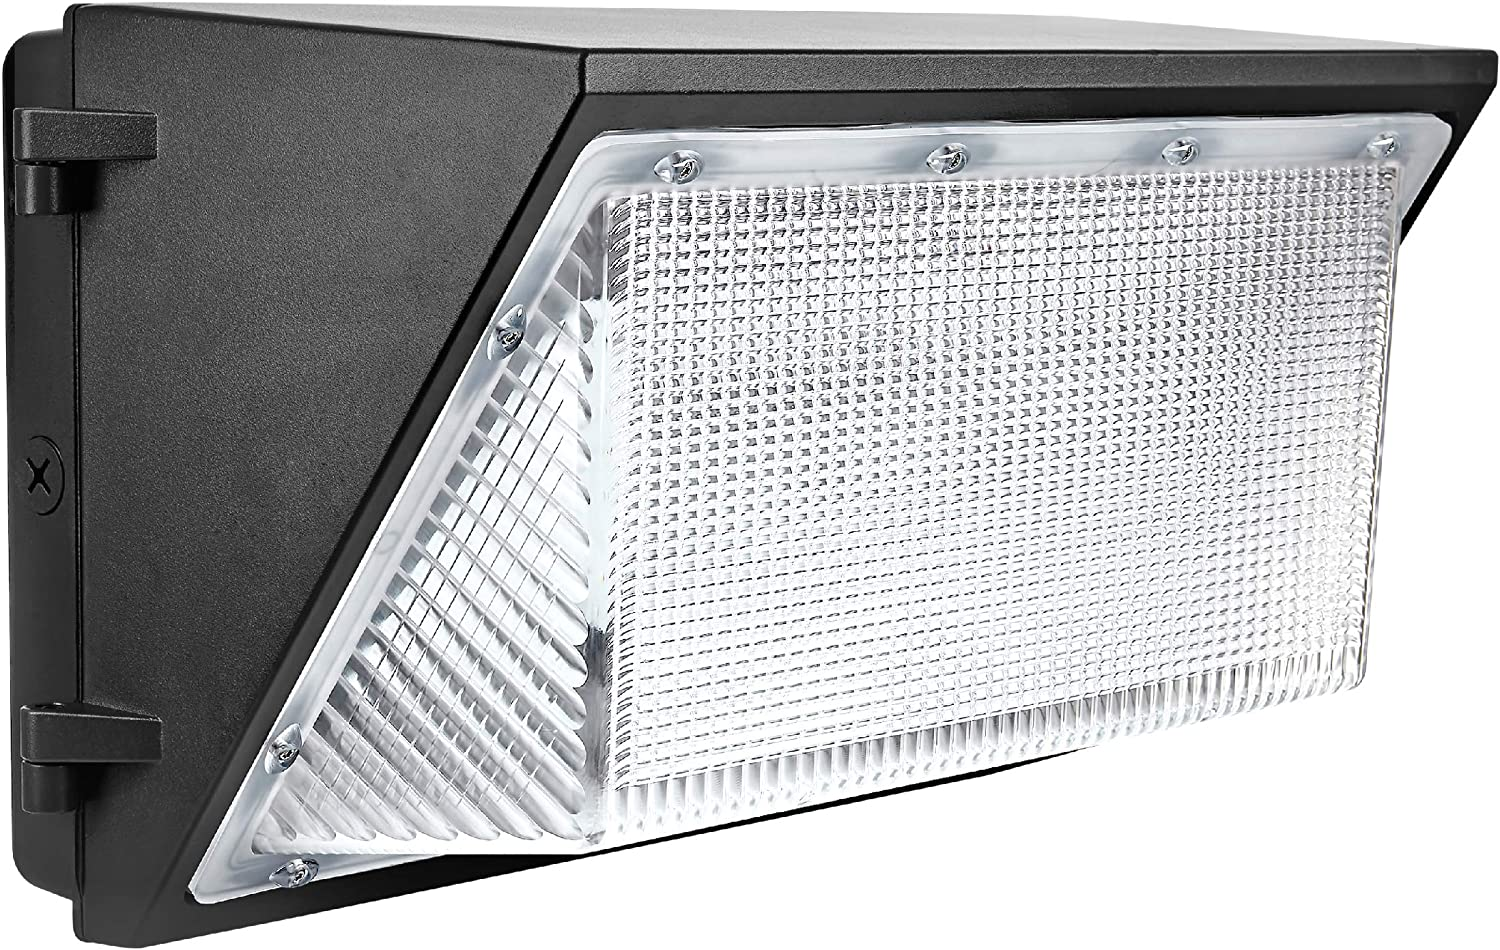 DLC IP65 Waterproof HPS HID Replacement Hyperikon LED Wall Pack 5000K 2 Pack 200W Commercial and Industrial Outdoor Lighting UL